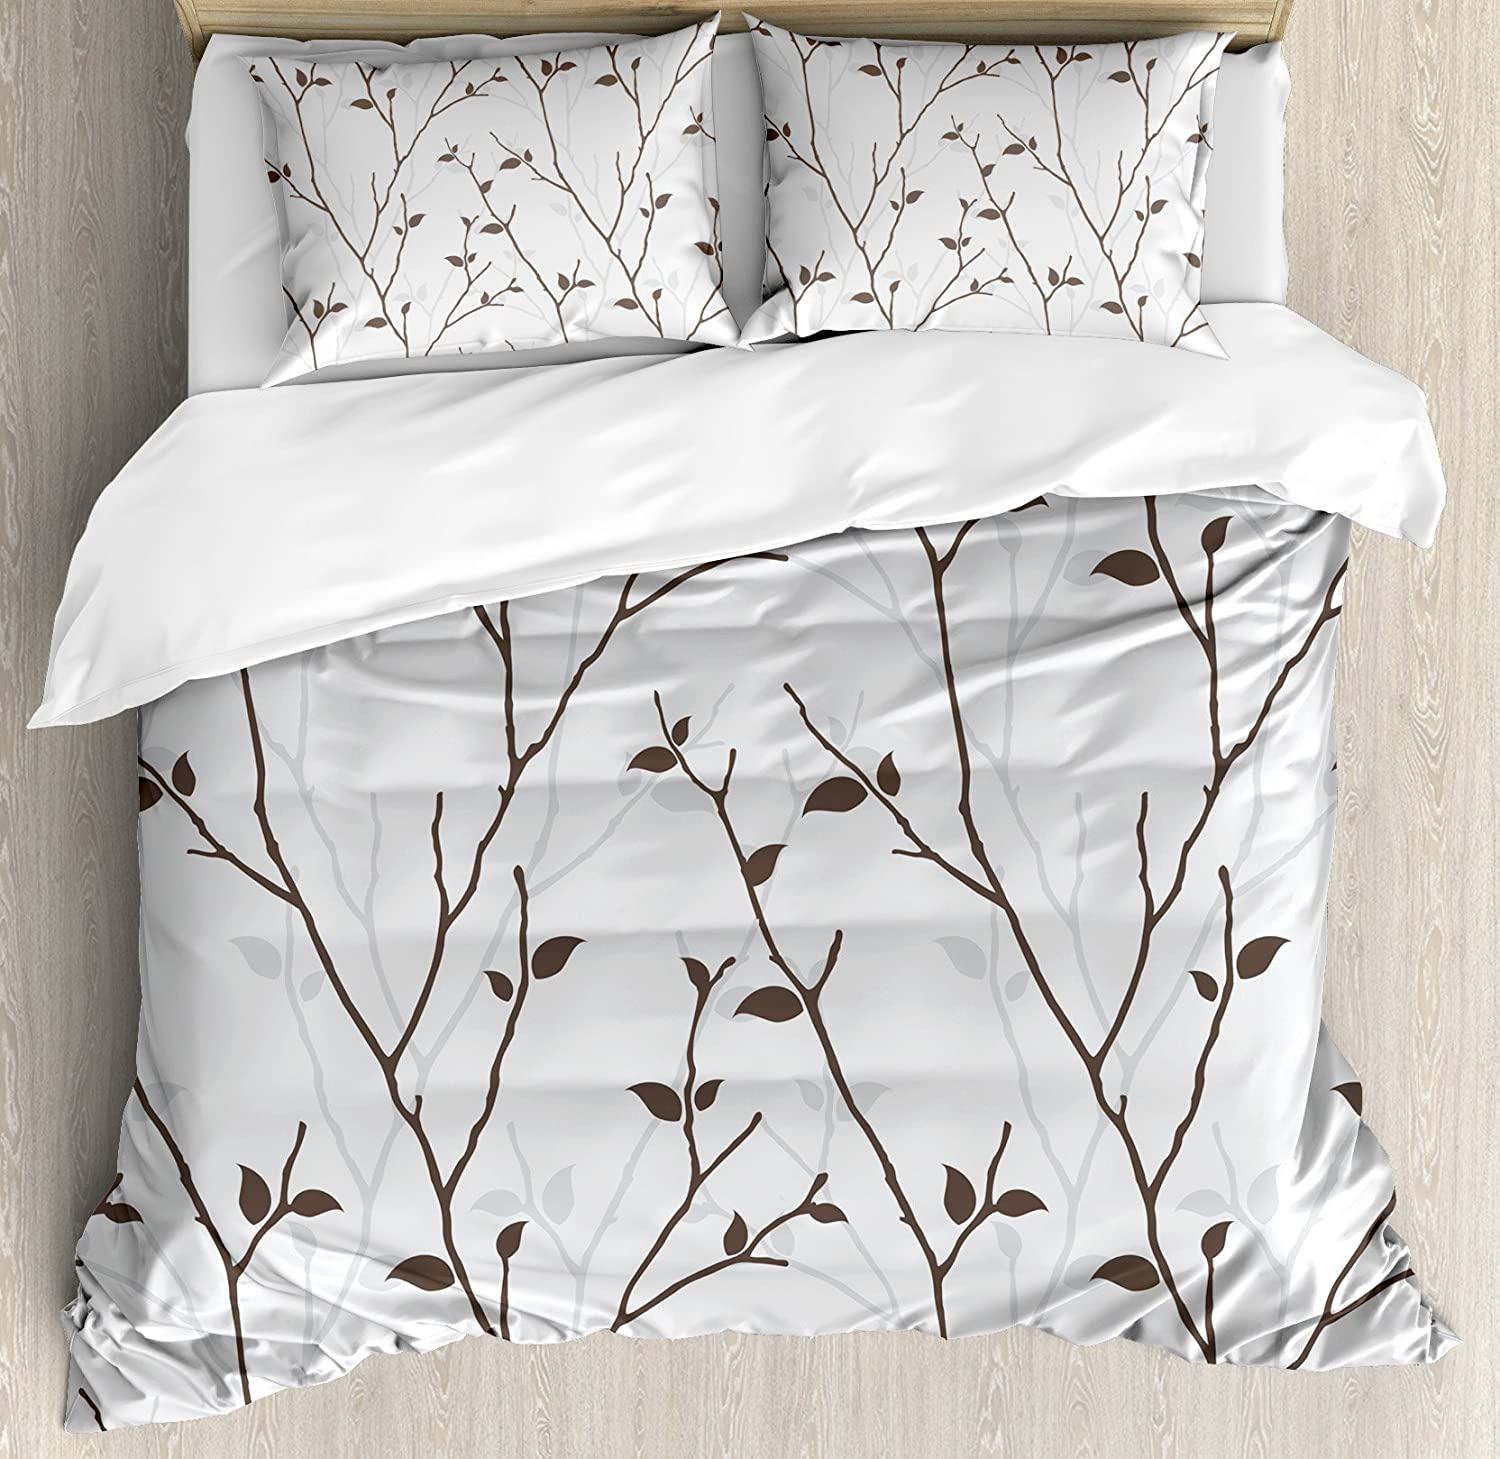 Ambesonne Leaf Duvet Cover Set, Branches in The Fall Trees Stem Twig with Last Few Leaves Minimalistic Design Art, Decorative 3 Piece Bedding Set with 2 Pillow Shams, Queen Size, Grey Brown